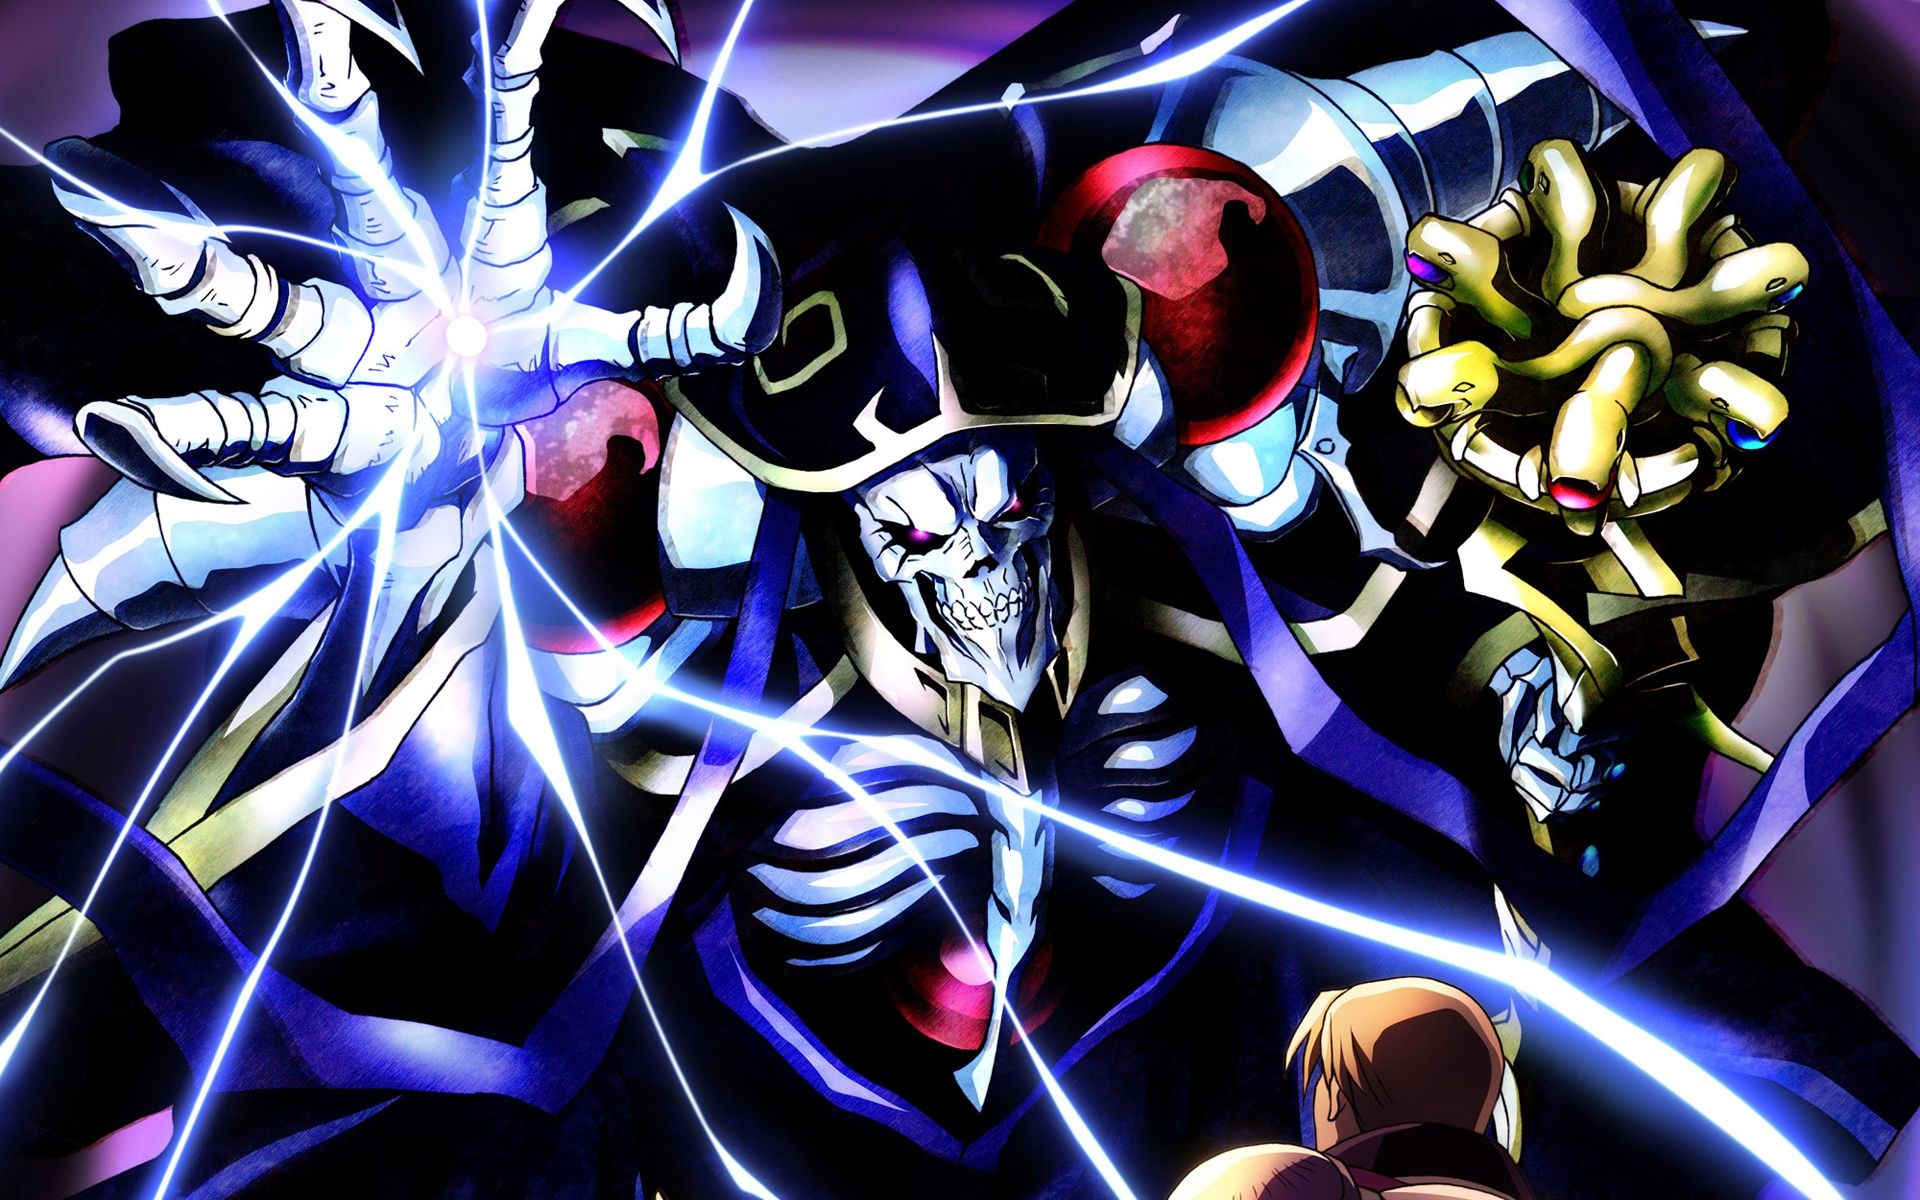 Ainz Ooal Gown Computer Wallpapers Desktop Backgrounds 1920x1200 Id 655516 Anime Wallpaper Anime Anime Fanart